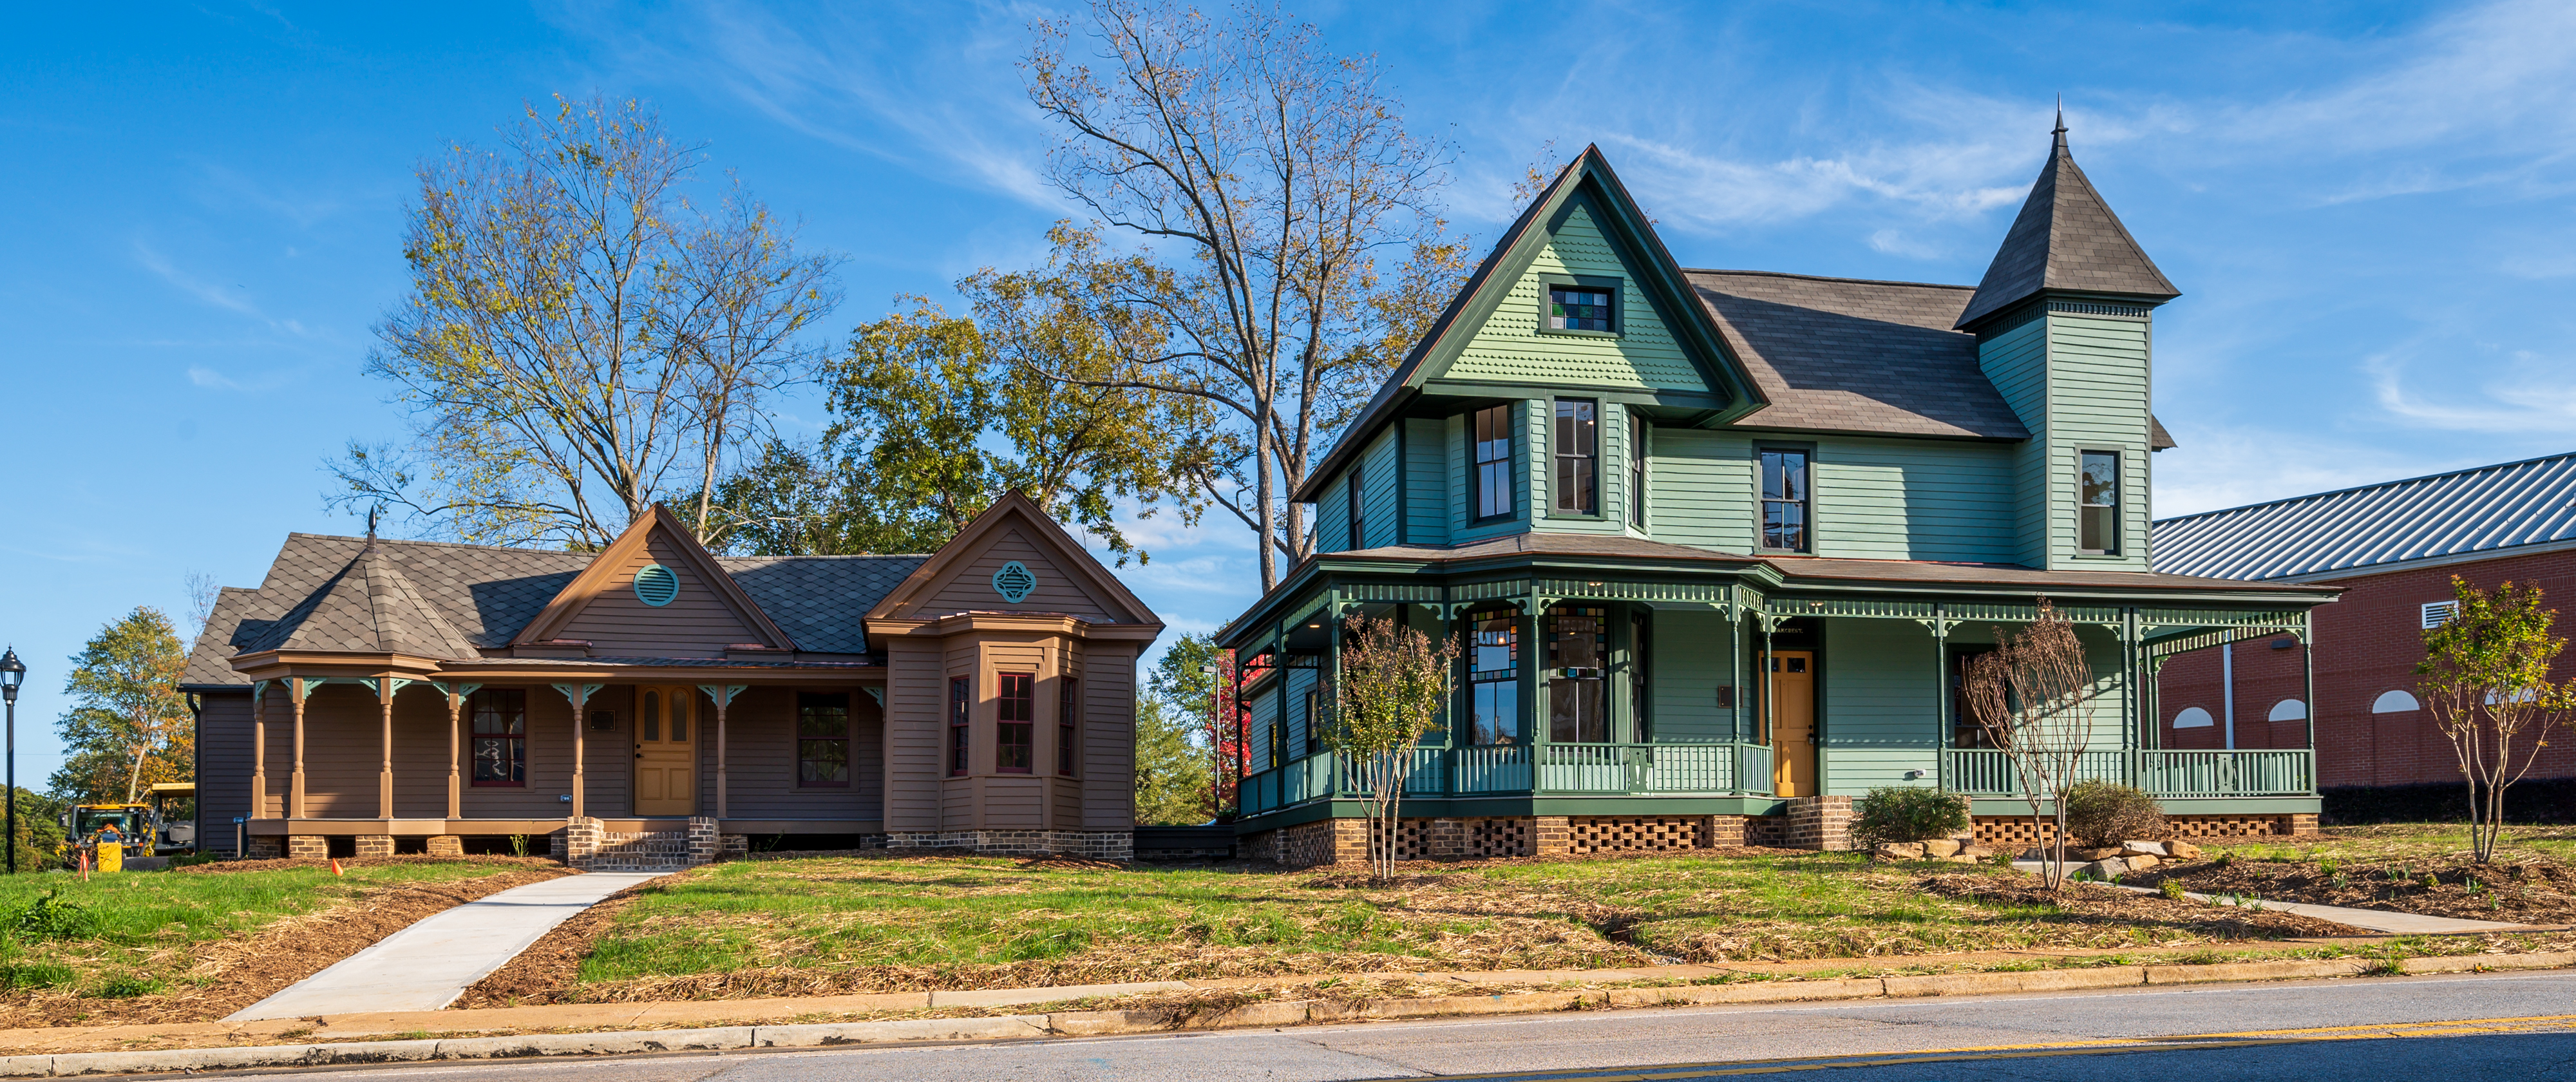 Preservation North Carolina's new headquarters in the Hall and Graves-Fields House in Oberlin, an African American community founded near Raleigh after the Civil War. Photo credit: Jim Lamb, Capital City Camera Club.